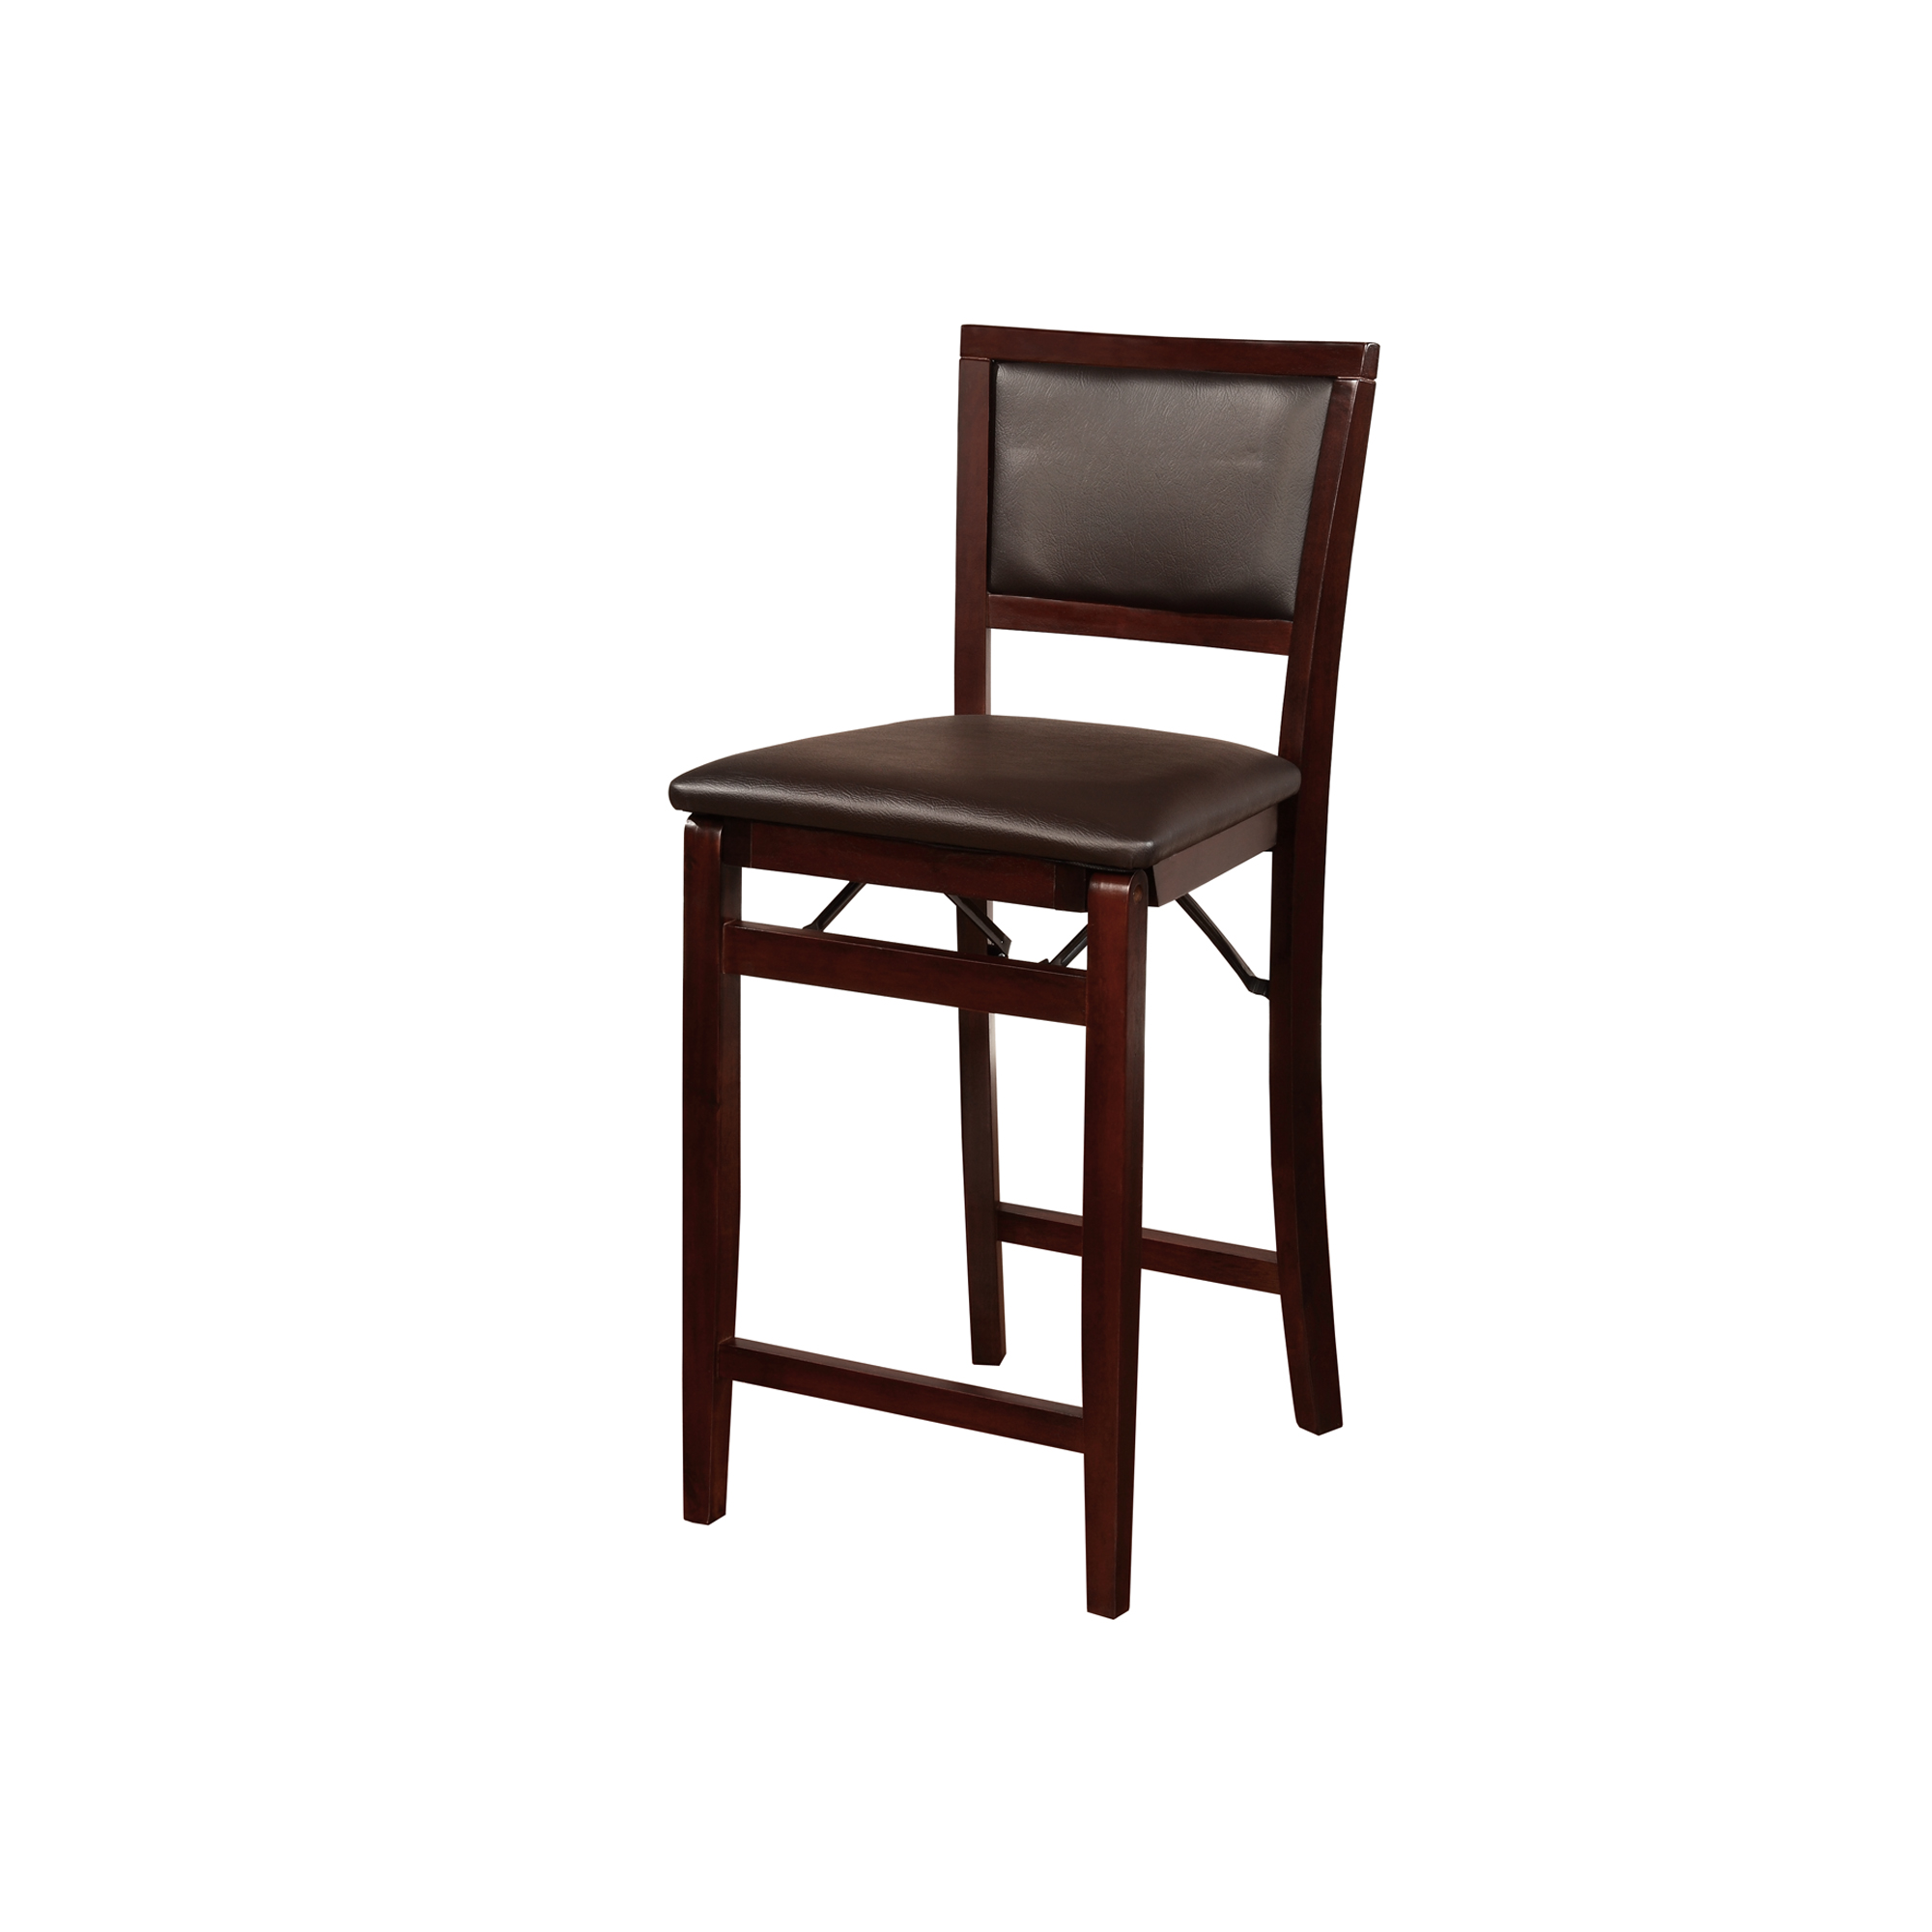 Superb Linon Keira Folding Counter Stool Espresso 24 Inch Seat Camellatalisay Diy Chair Ideas Camellatalisaycom